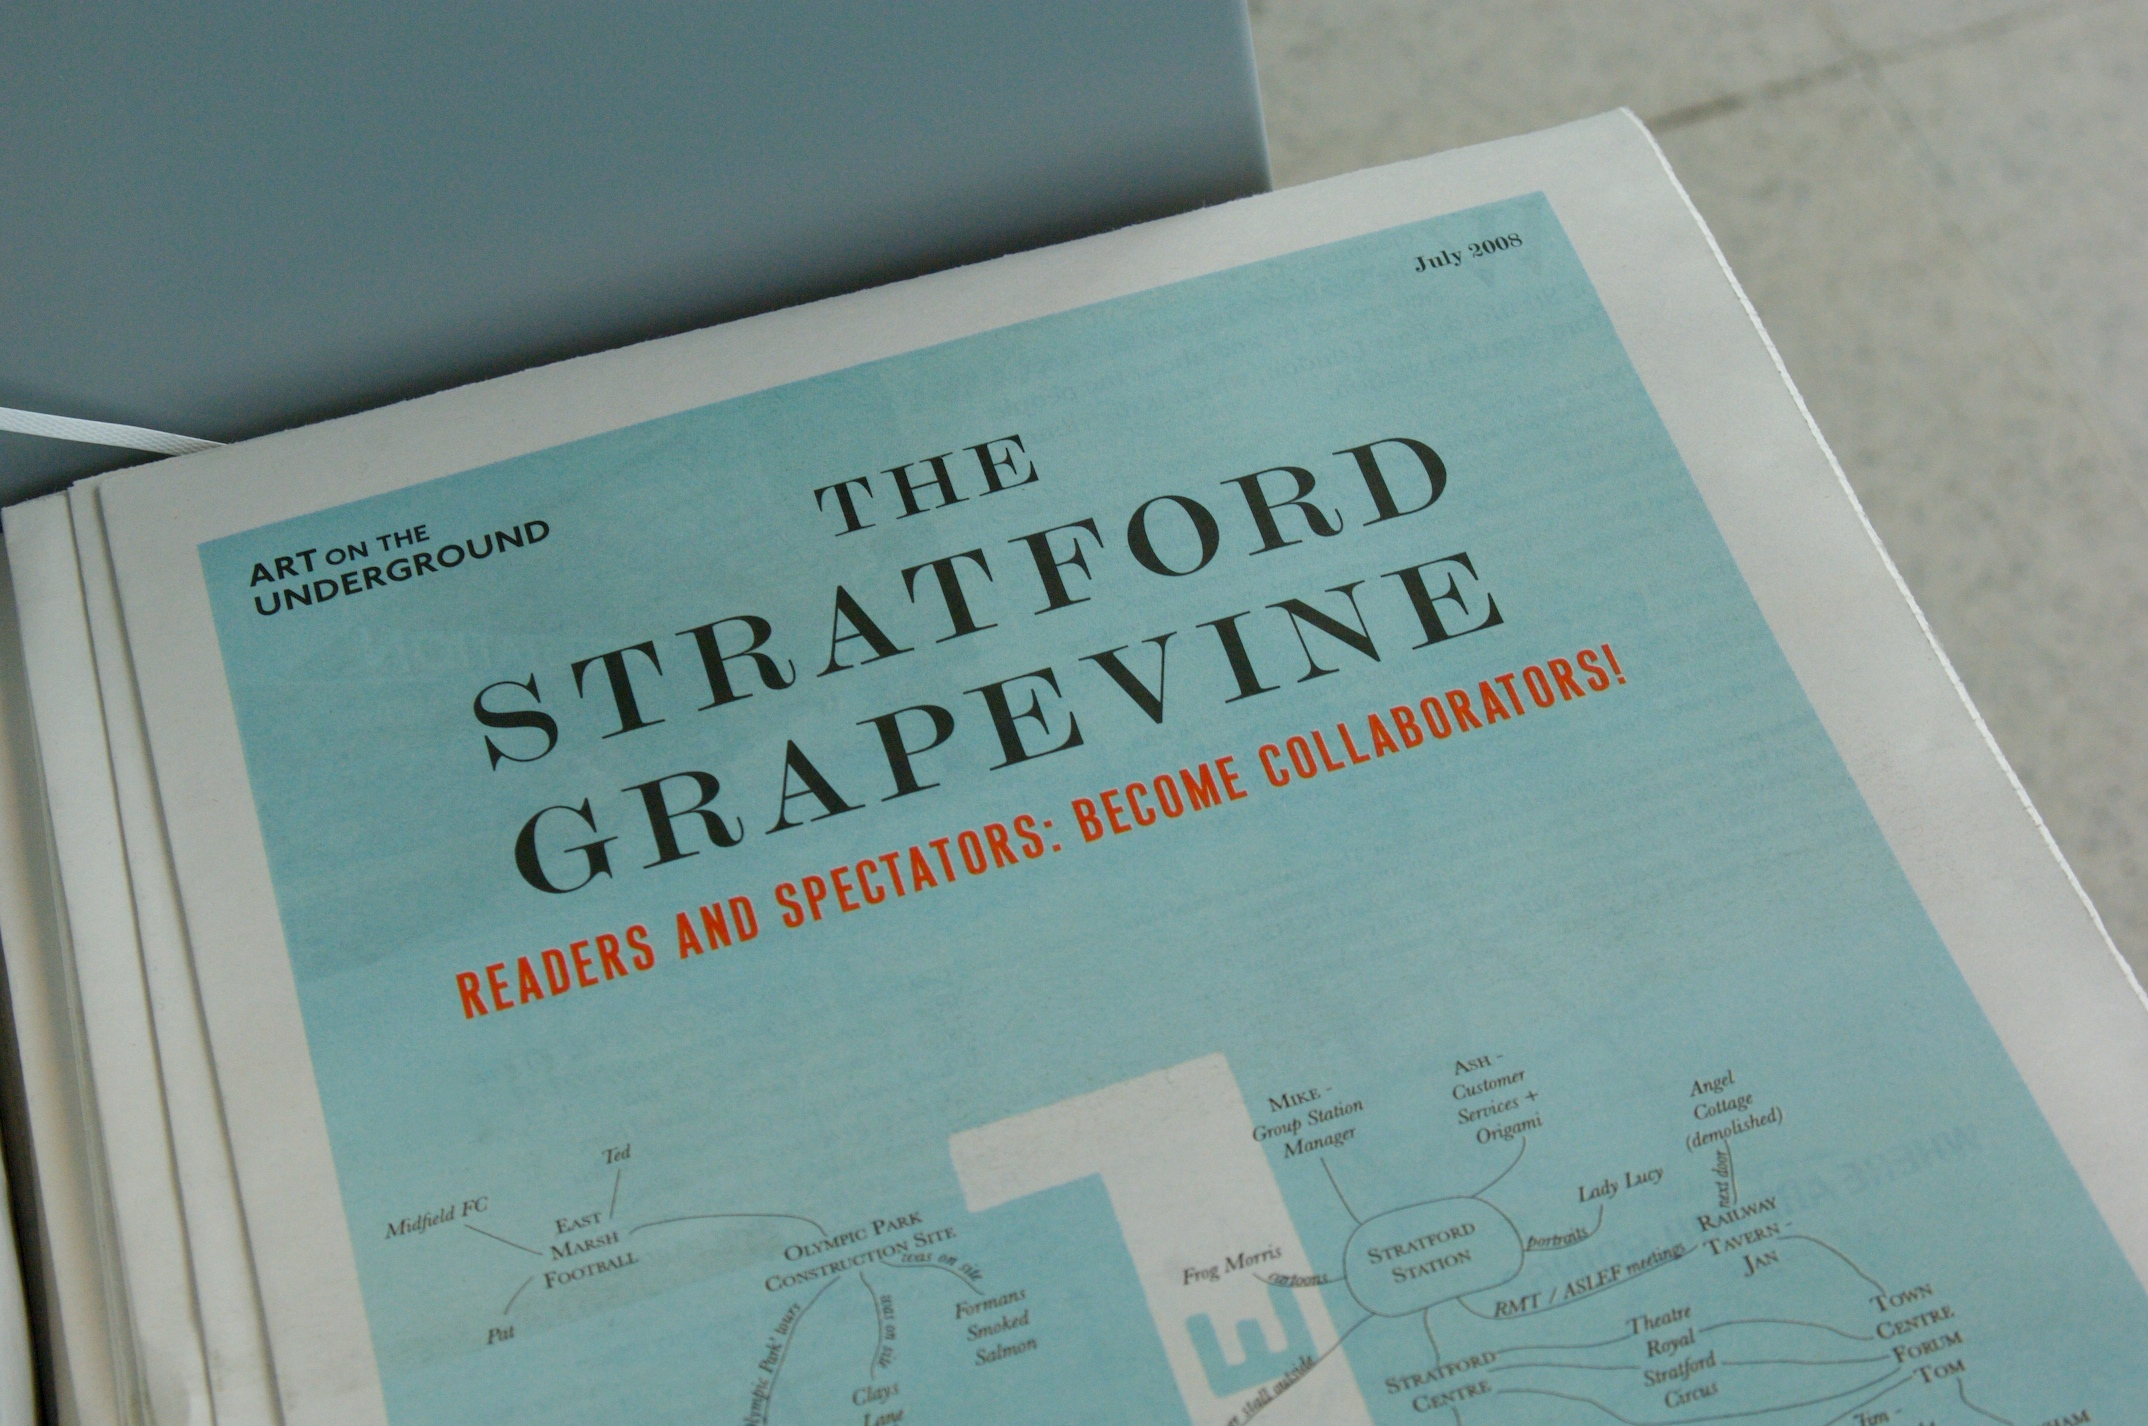 Art on the Underground: The Stratford Grapevine